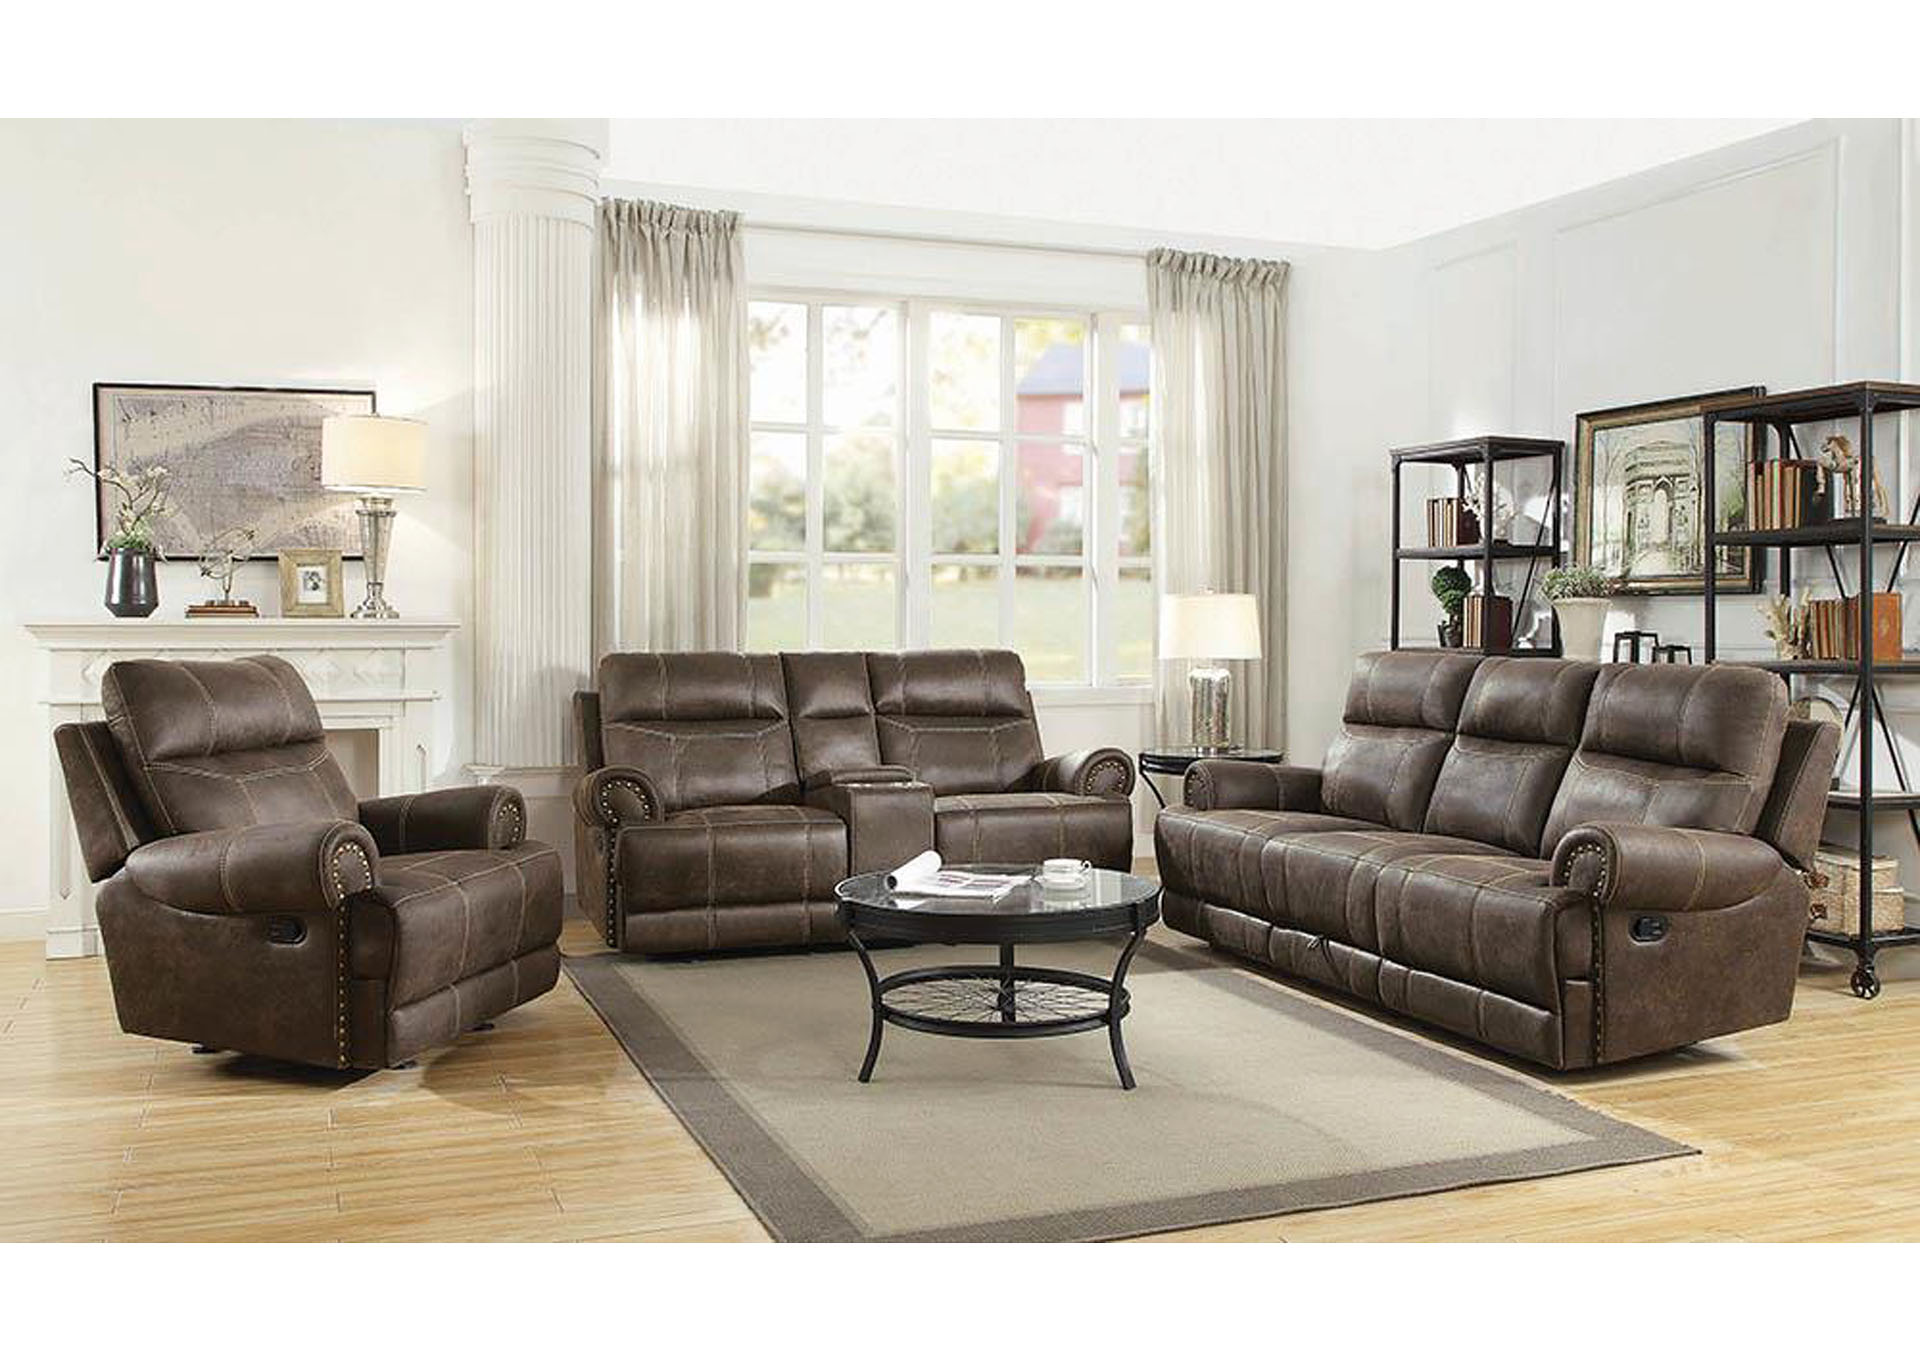 Buckskin Brown Glider Reclining Loveseat,Coaster Furniture